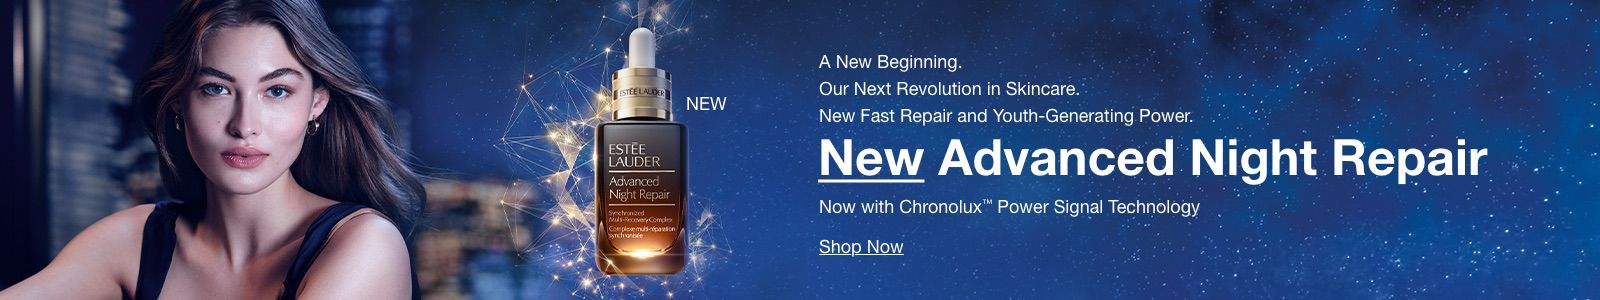 A New Beginning Our Next Revolution in Skincare, New Fast Repair and Youth-Generation Power, New Advanced Night Repair, Now with ChronoluxTM Power Signal Technology